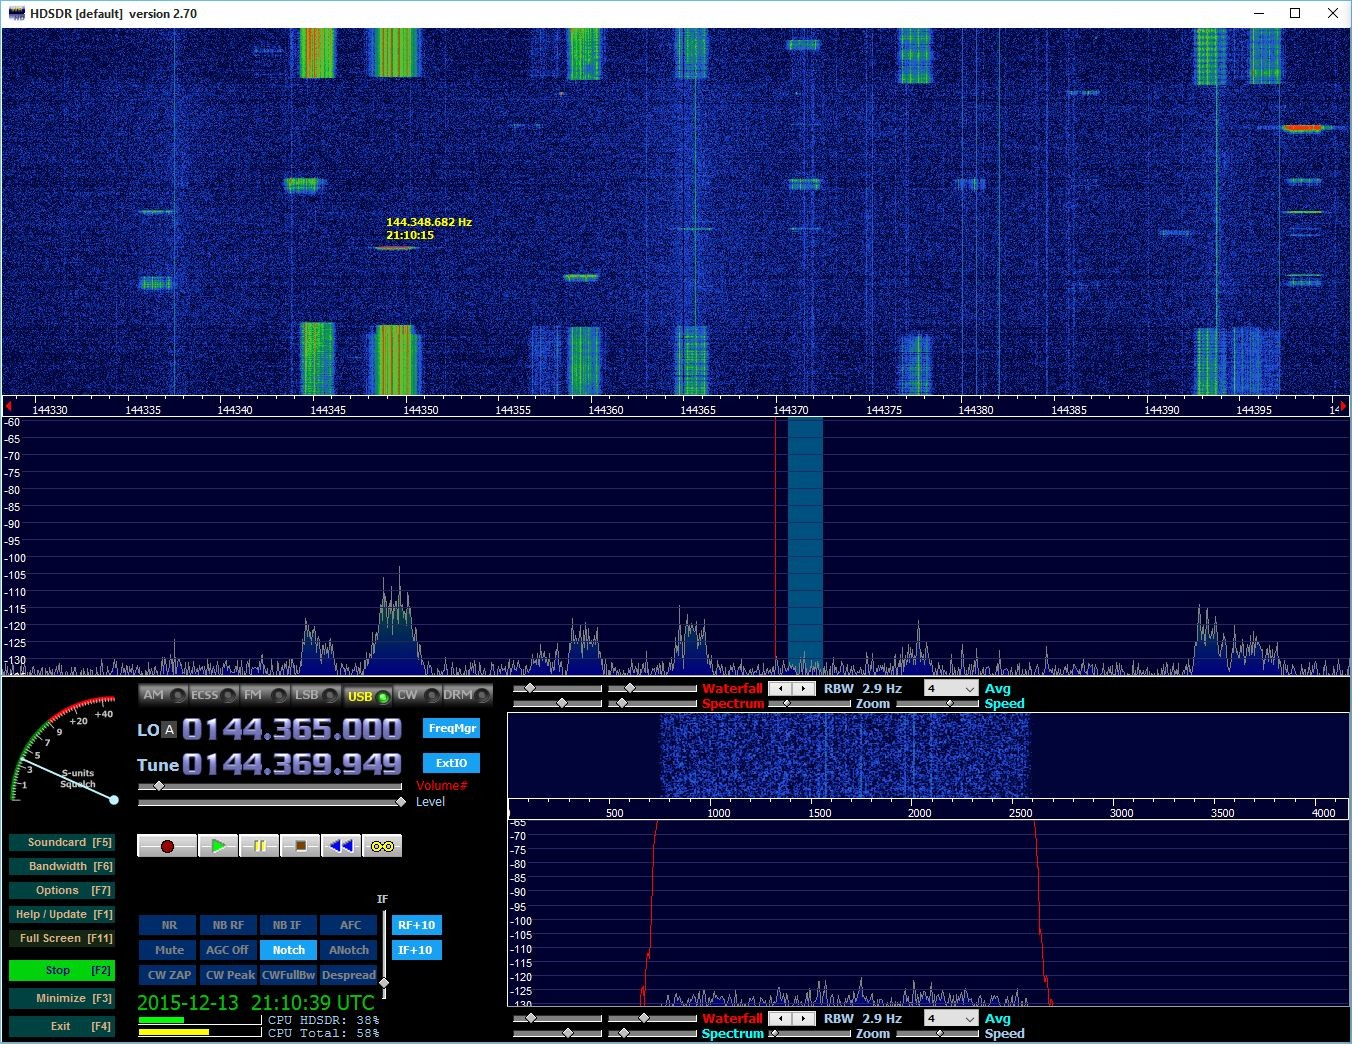 Running QSOs, pings and bursts in 1st and 2nd period